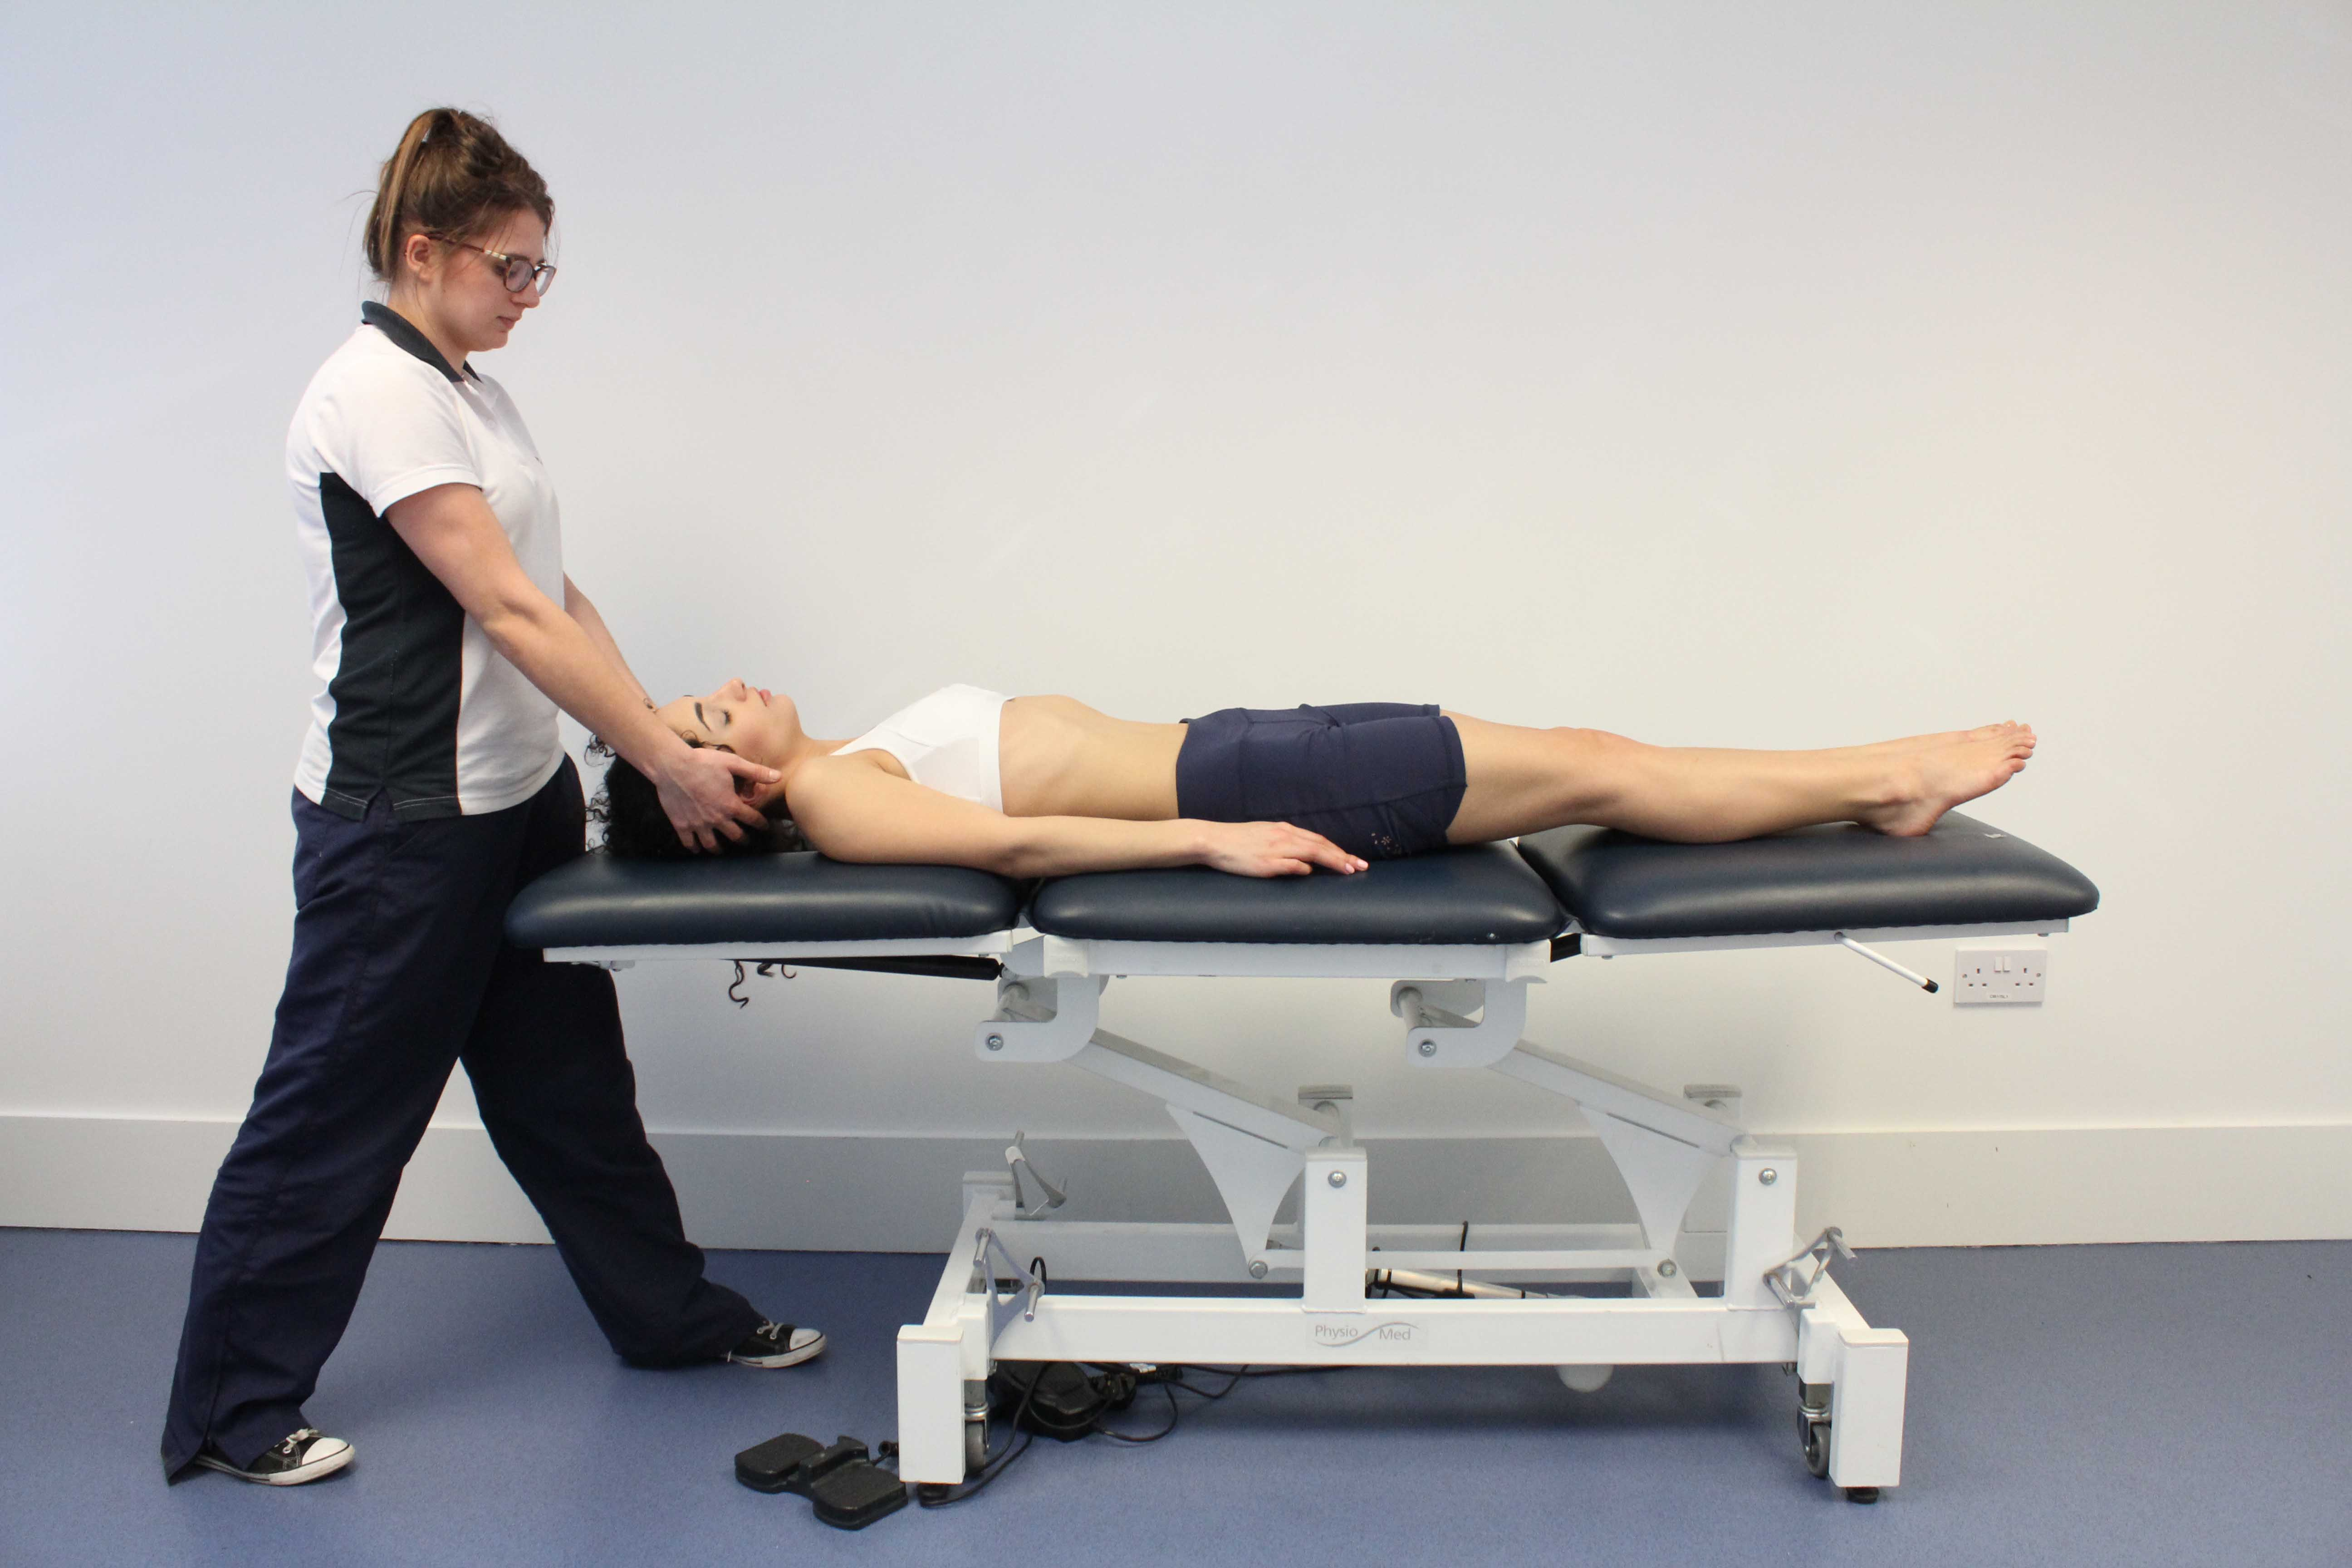 Passive stretches and mobilisations by a physiotherapist of muscle and cervical vertebrea to relieve stiffness and pain